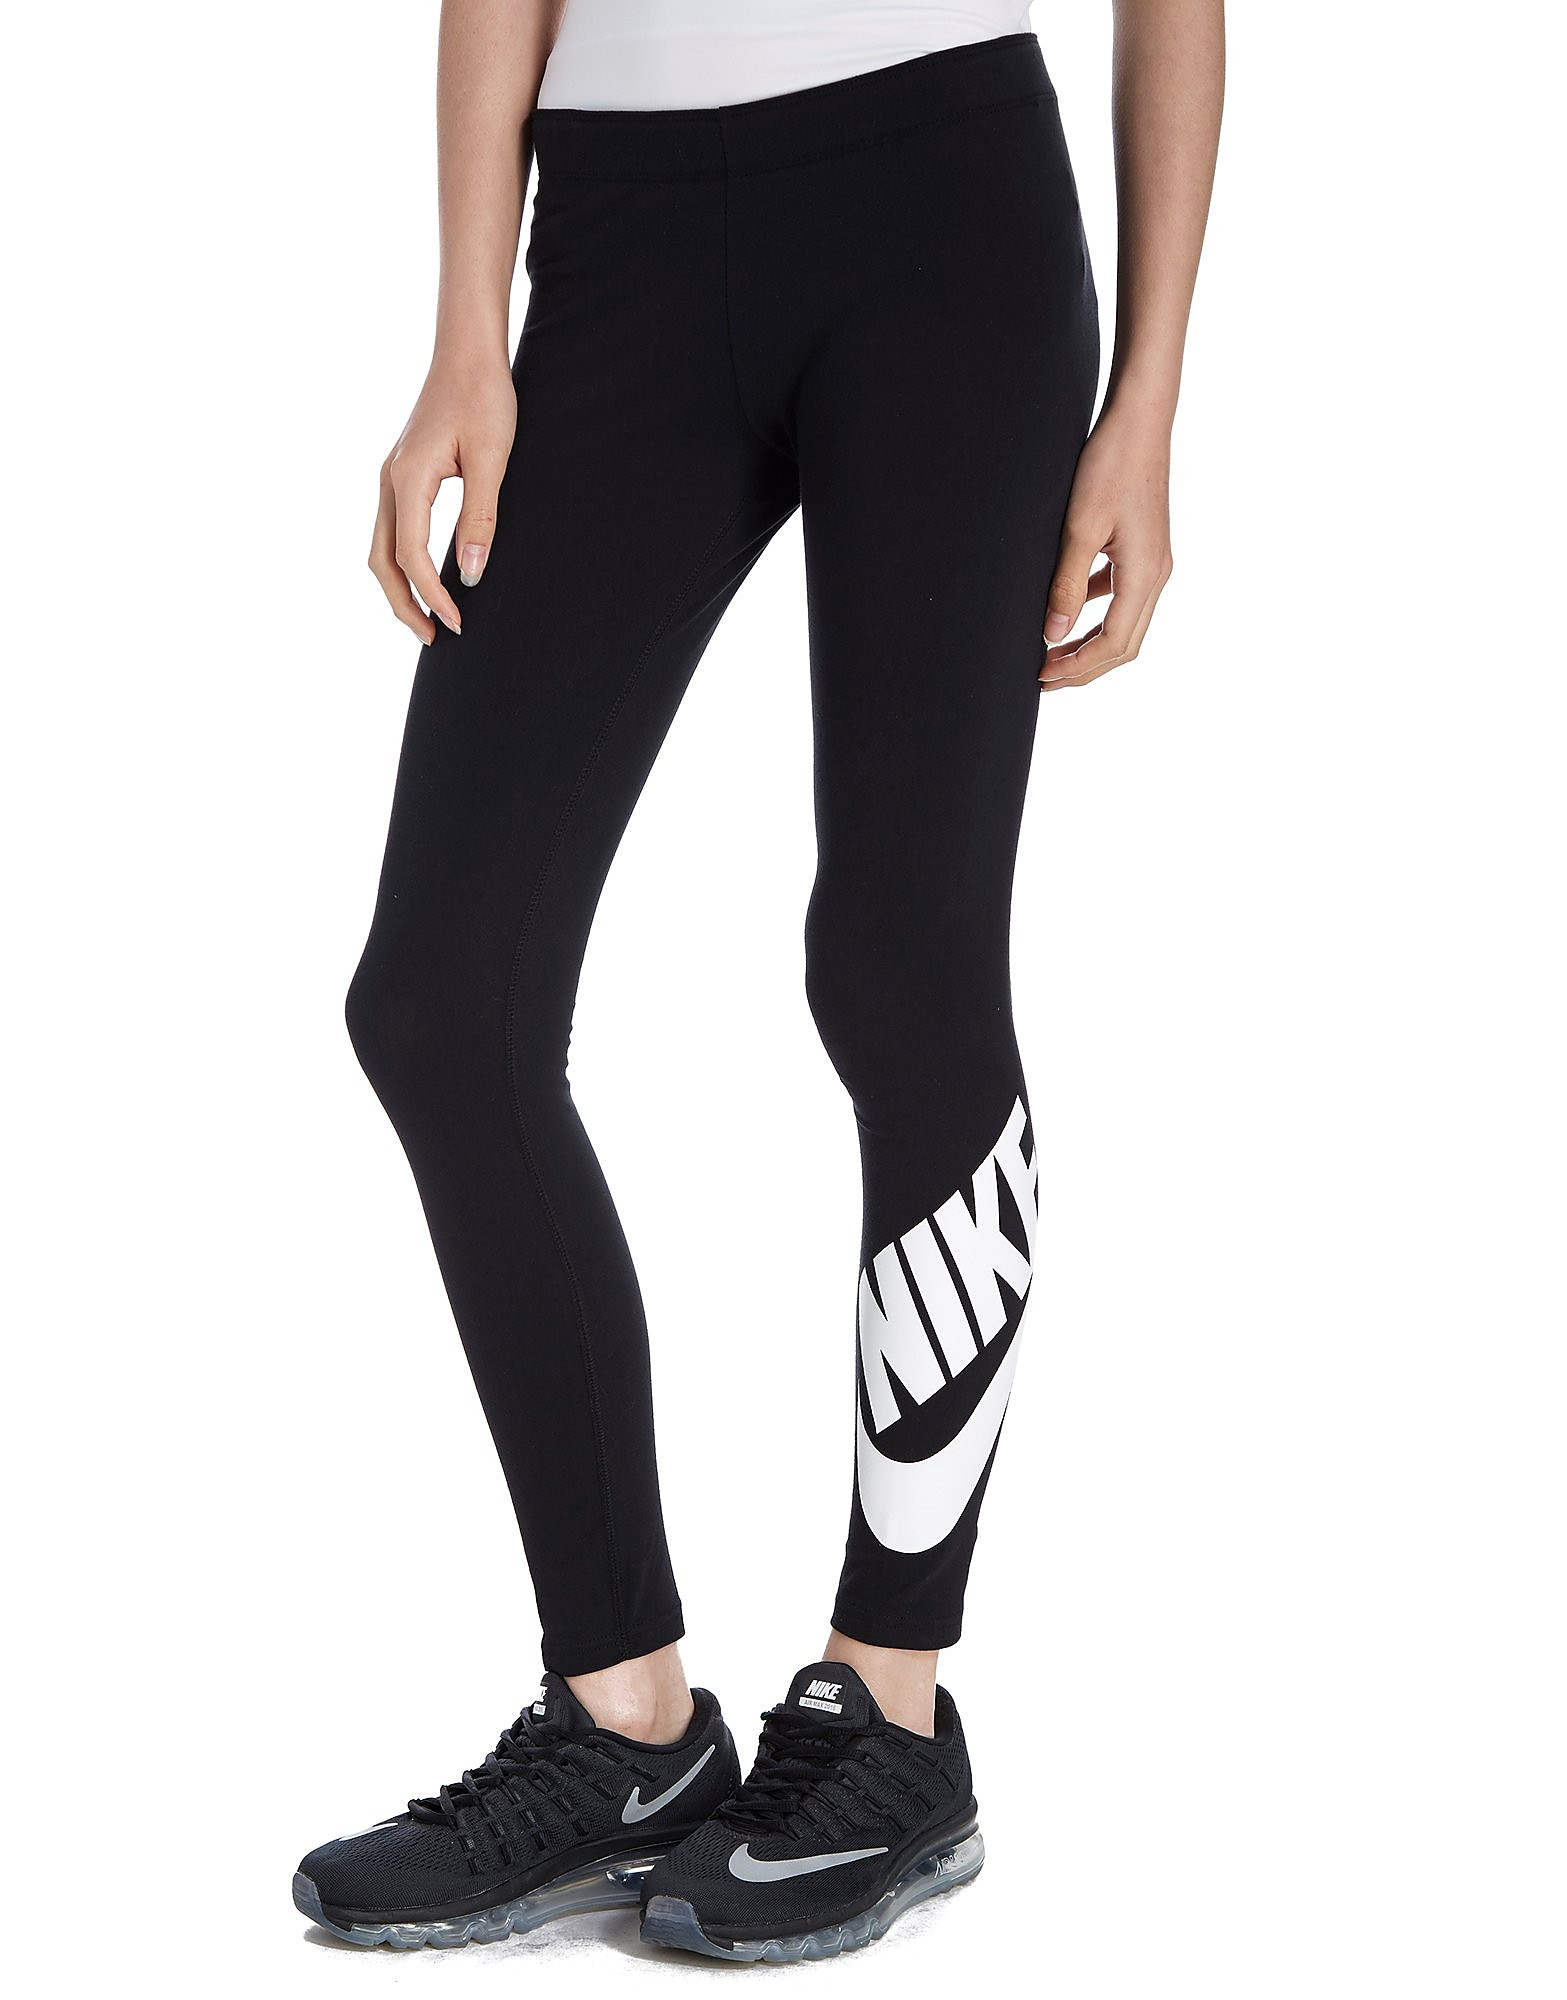 Nike Collant de fitness Leg A See junior pour fille